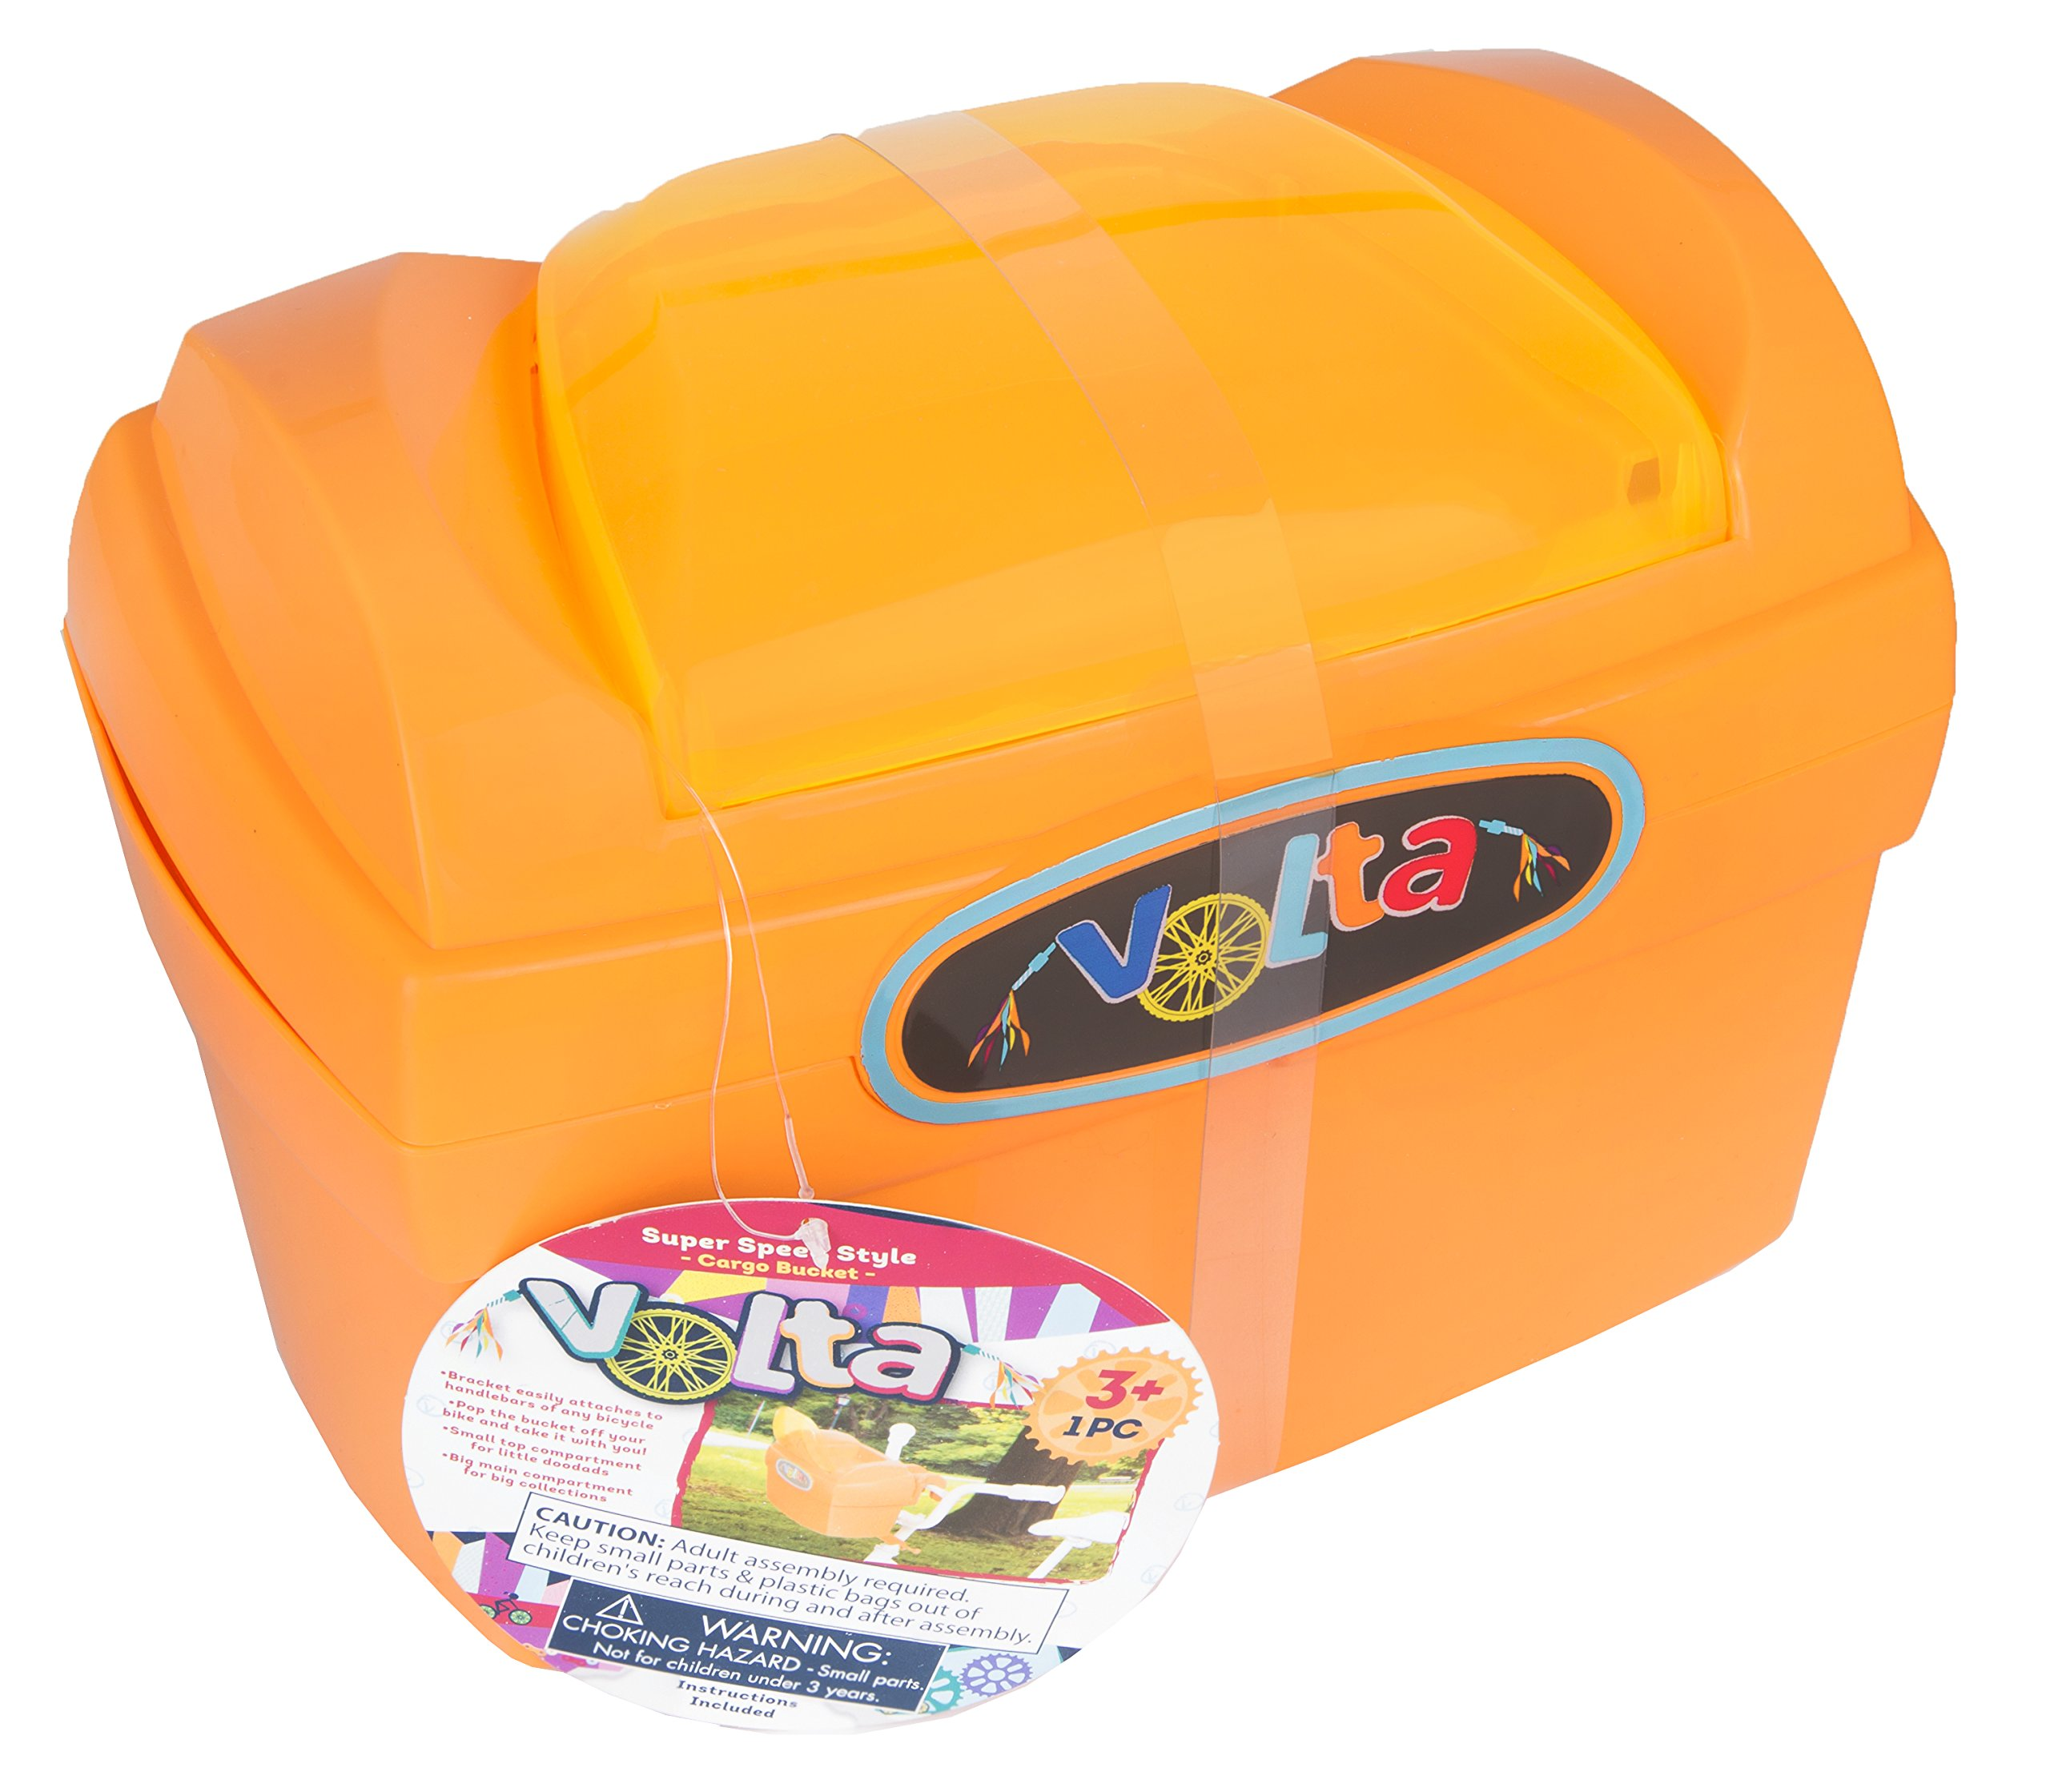 Volta Super Speed Style Cargo Bucket - Features Two Compartments - Easily Attaches to Handlebars and Comes On and Off - Compatible with Nearly All Bikes - Orange